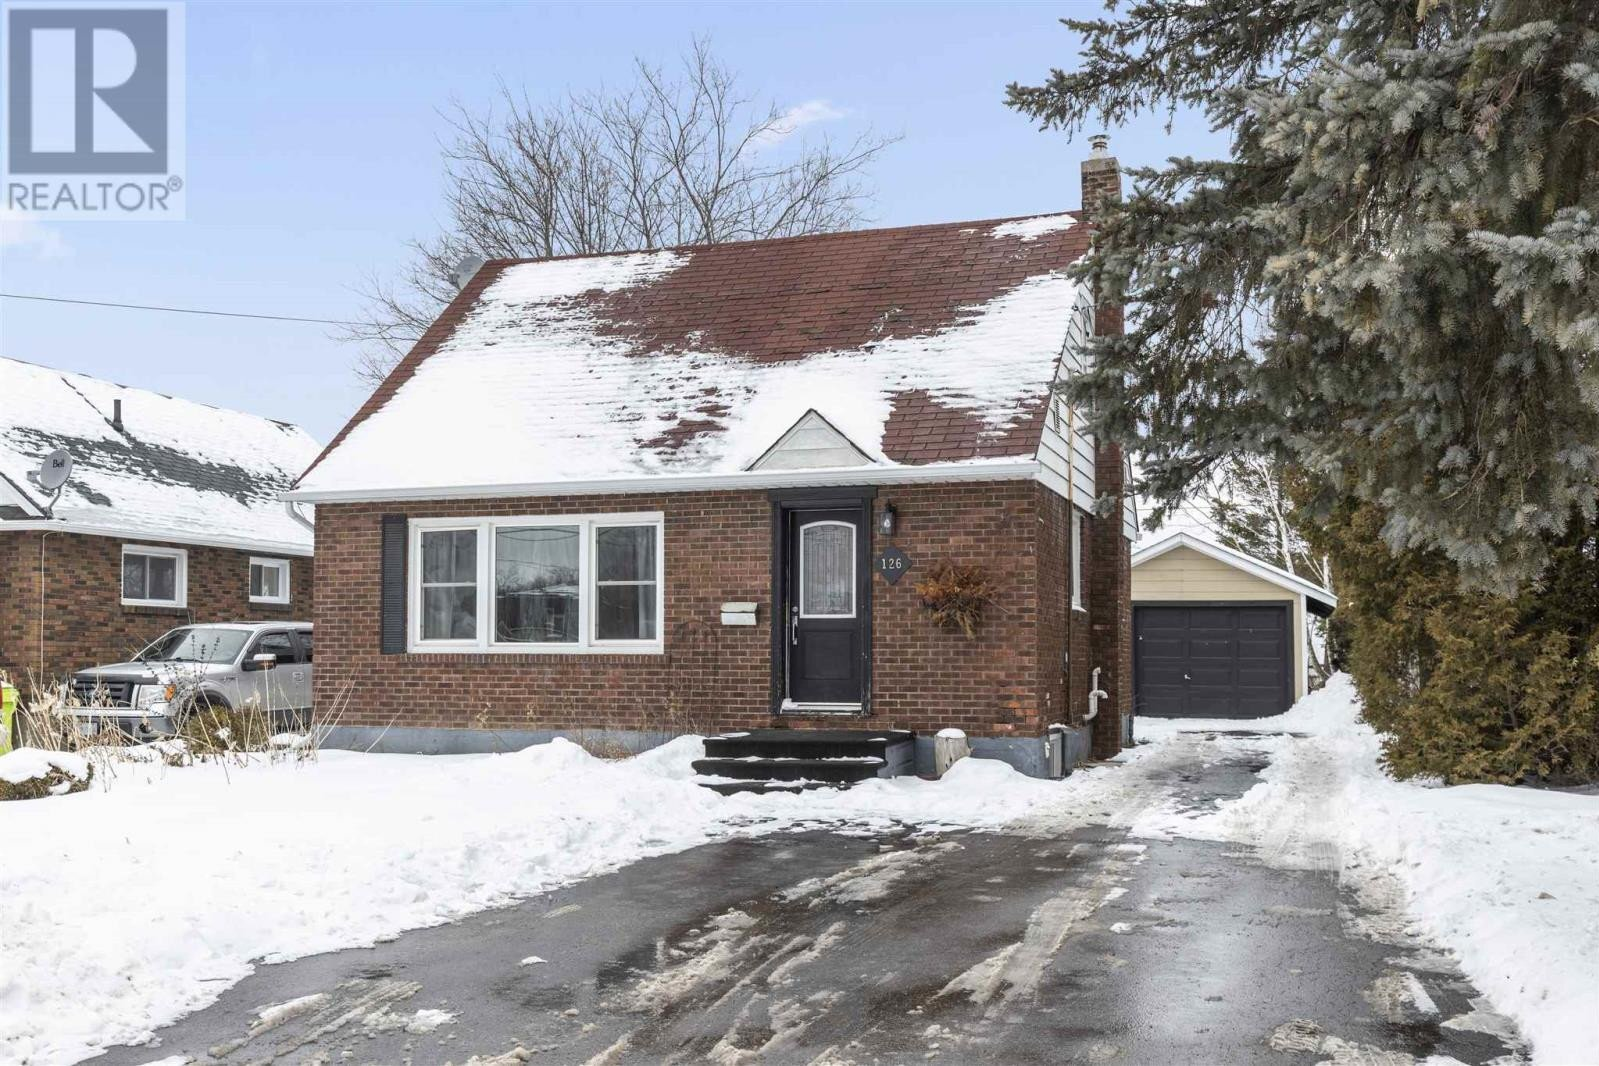 House for sale at 126 Macdonald Ave Sault Ste. Marie Ontario - MLS: SM130361